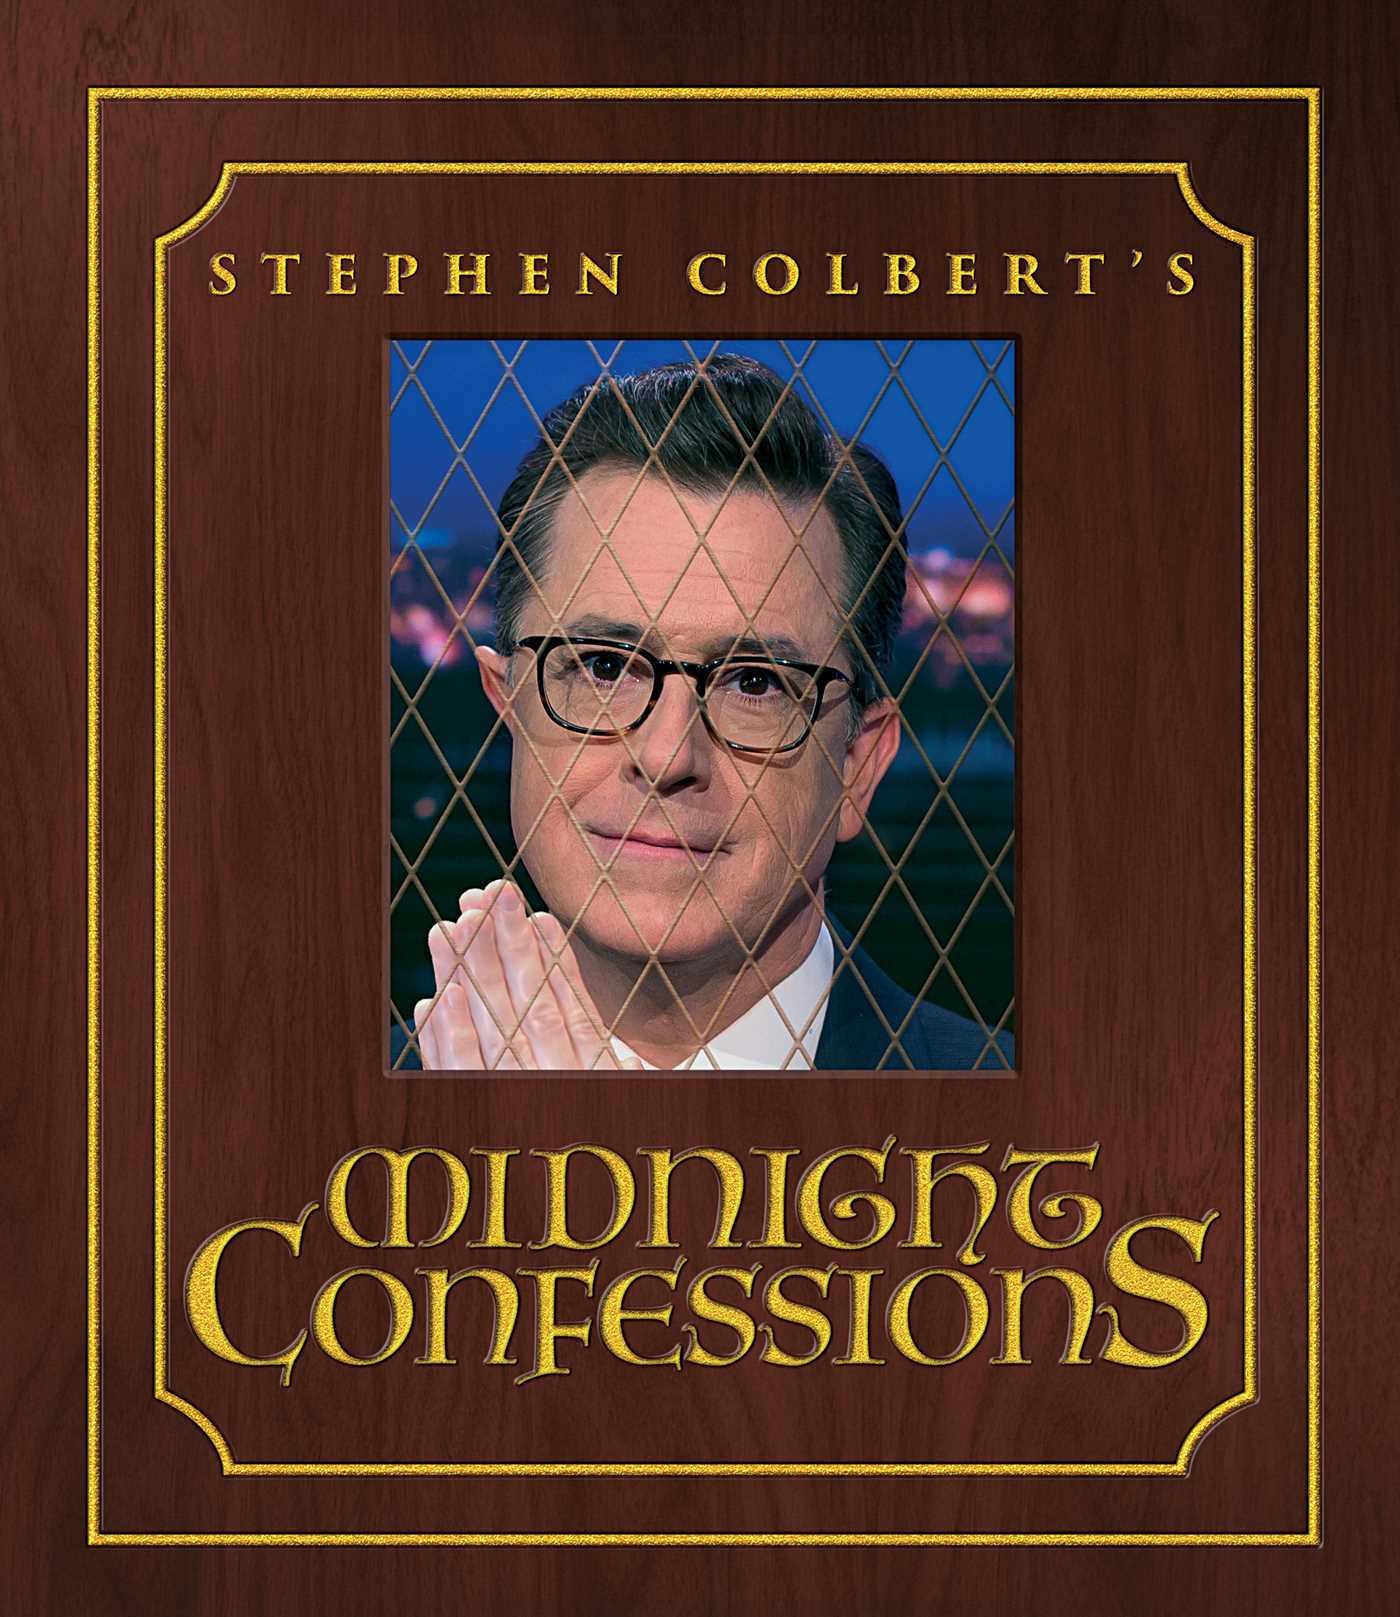 Stephen colberts midnight confessions 9781501169007 hr